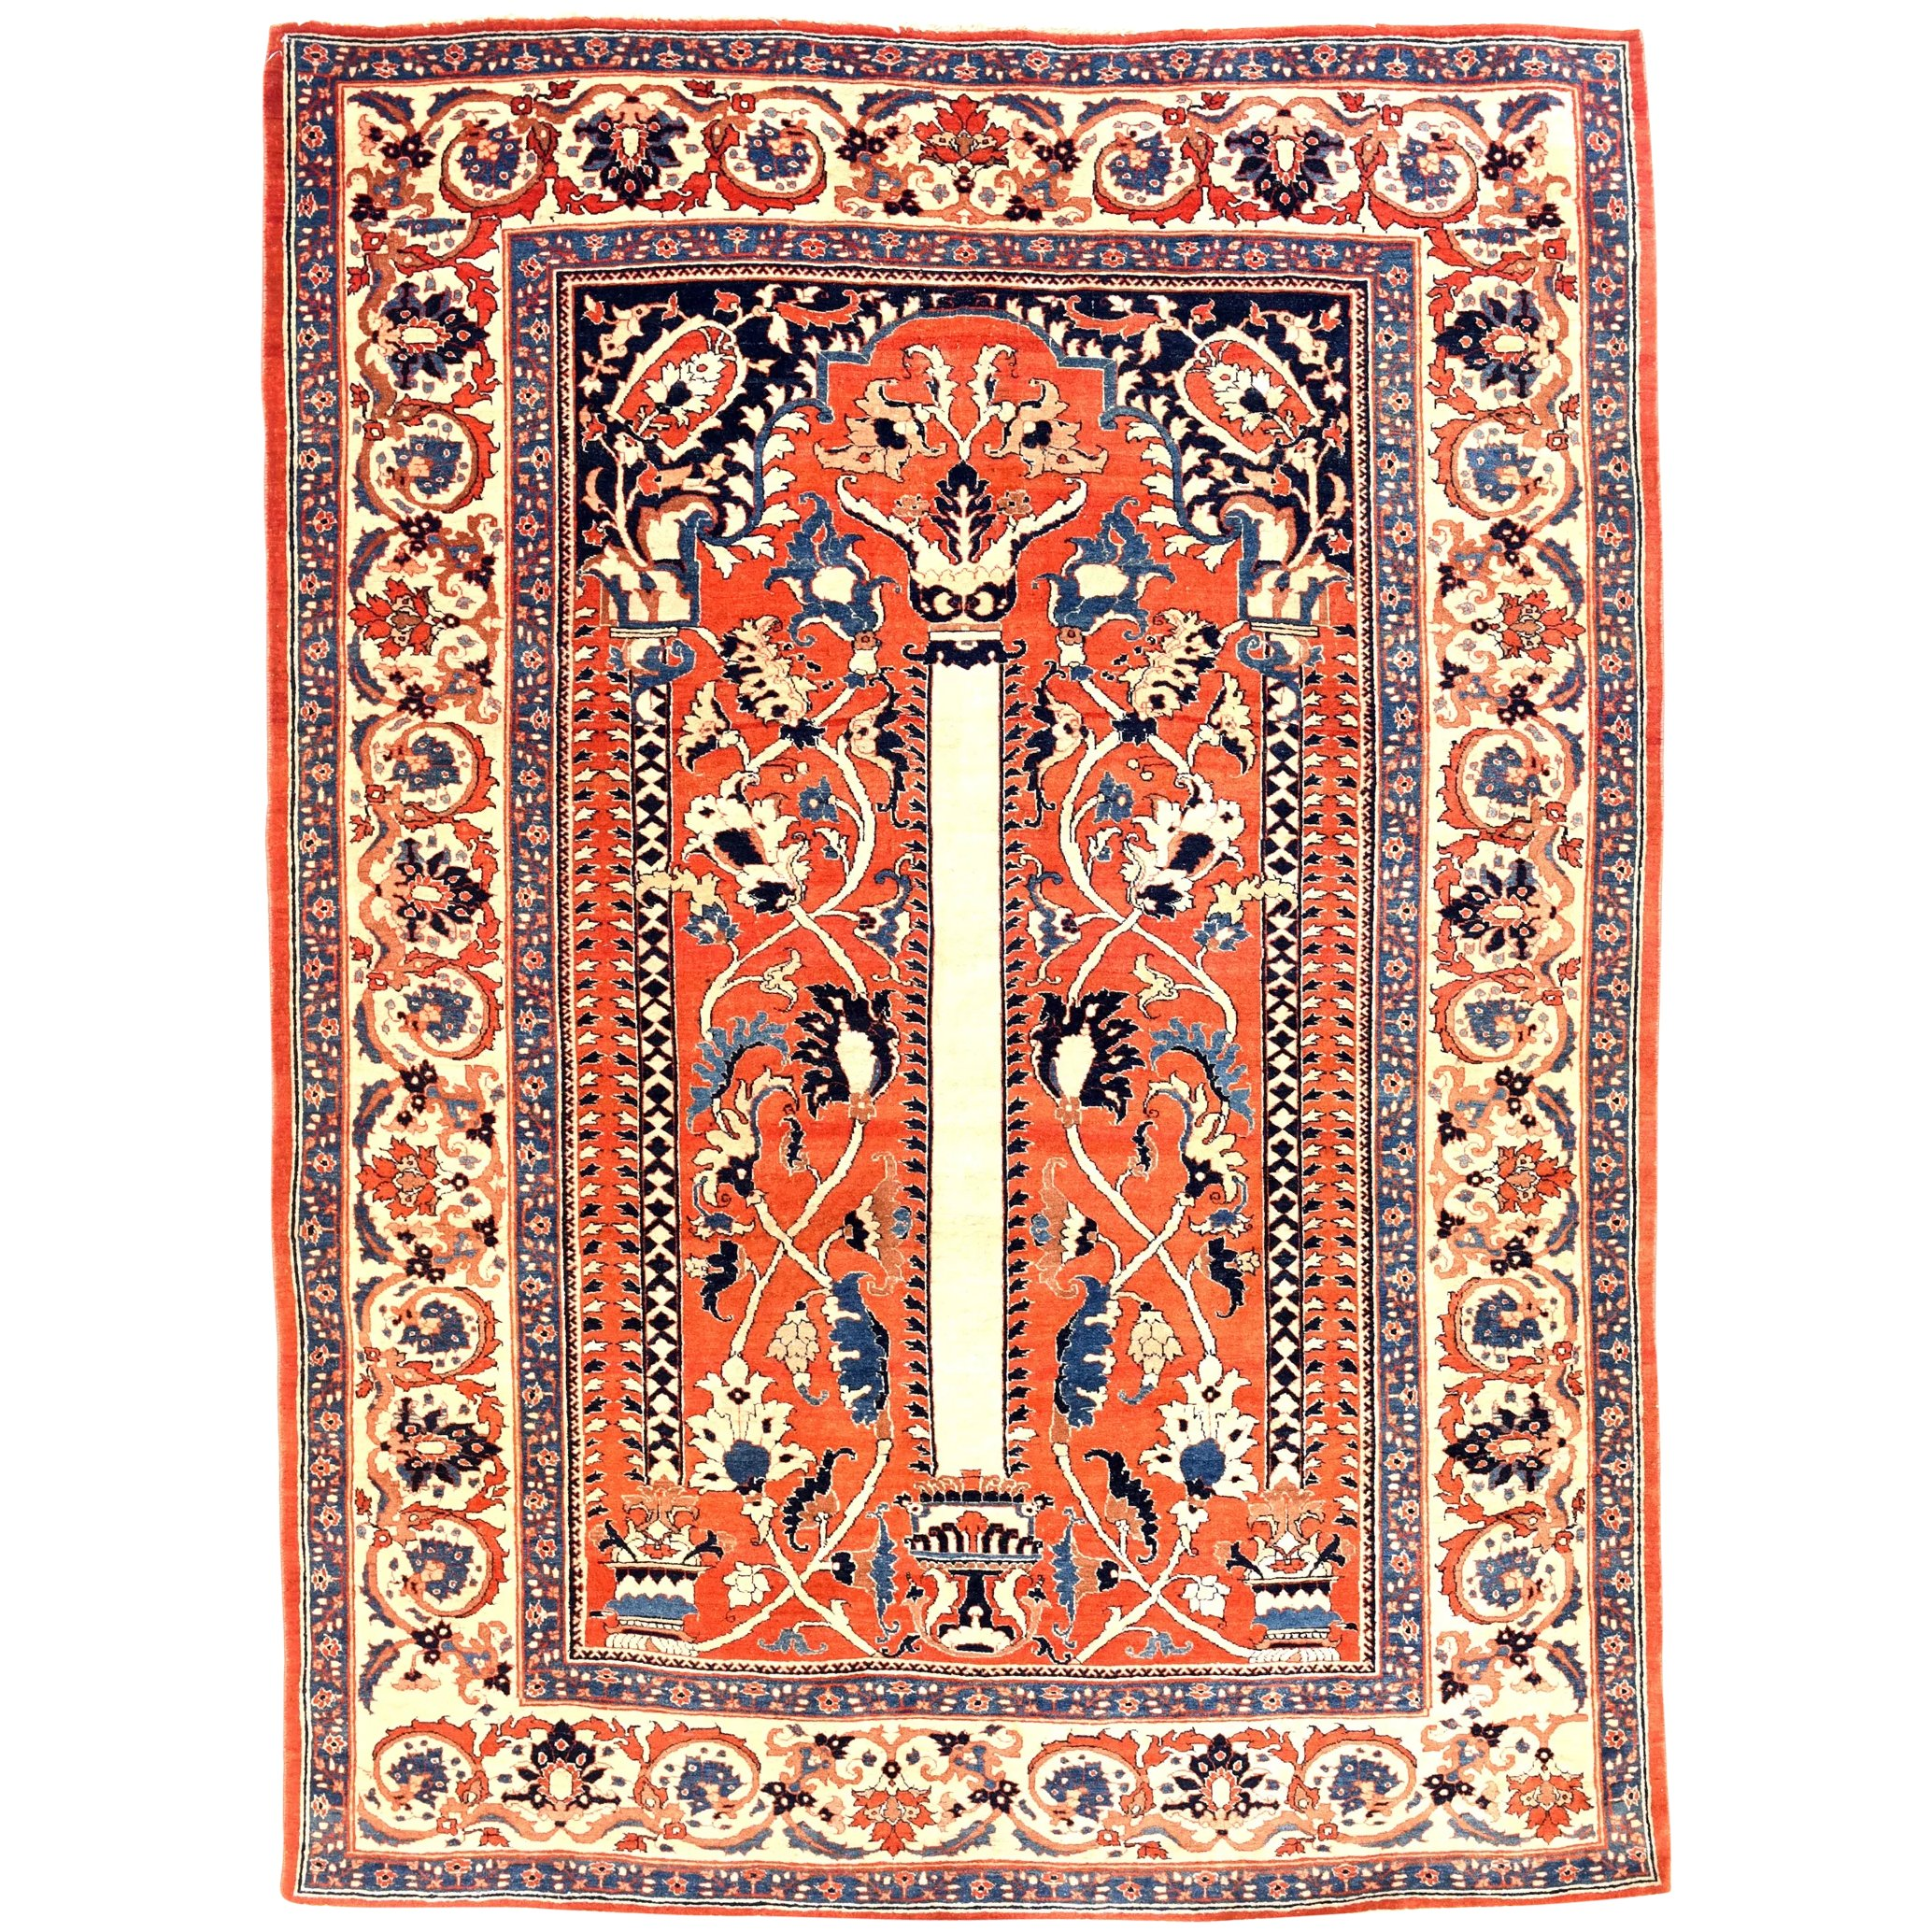 Extremley Fine Rare Antique Persian Rug Tabriz Haji Jalili Hand Knotted Cira 1890 Size 4 9 X 6 2